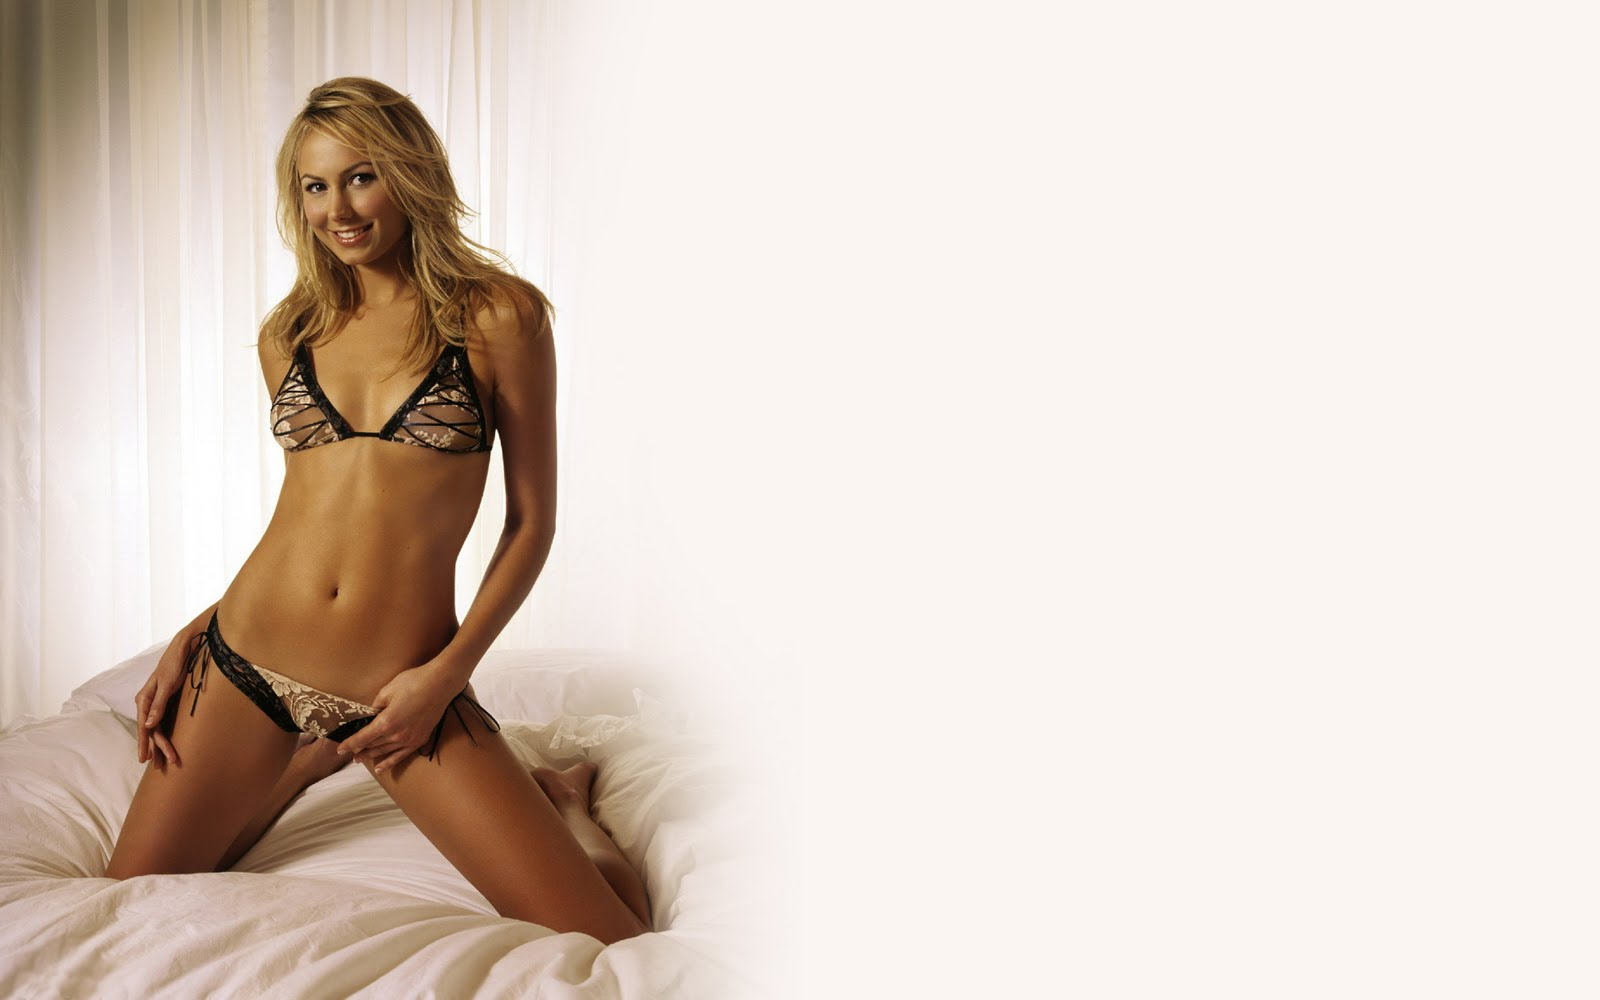 stacy keibler 1440x900 wallpapers - photo #10